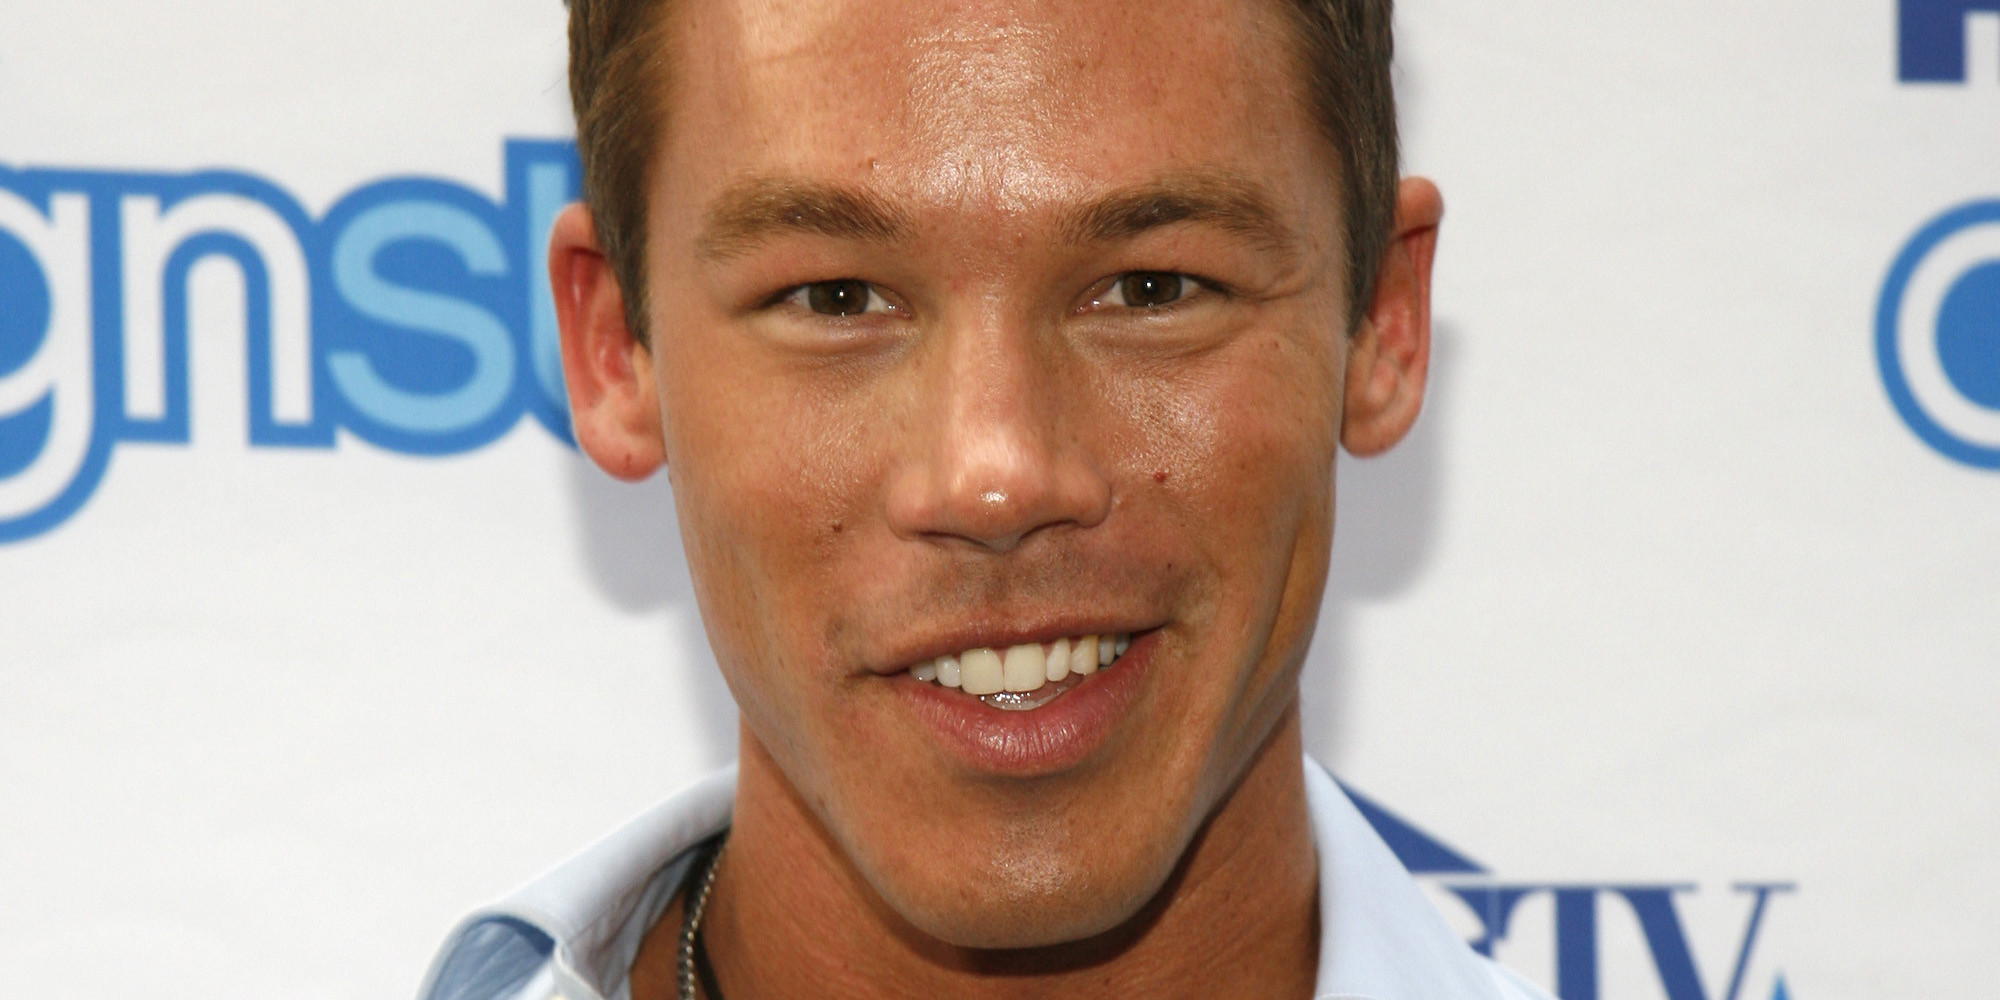 David bromstad gay hgtv designer criticized for hosting for David hgtv designer